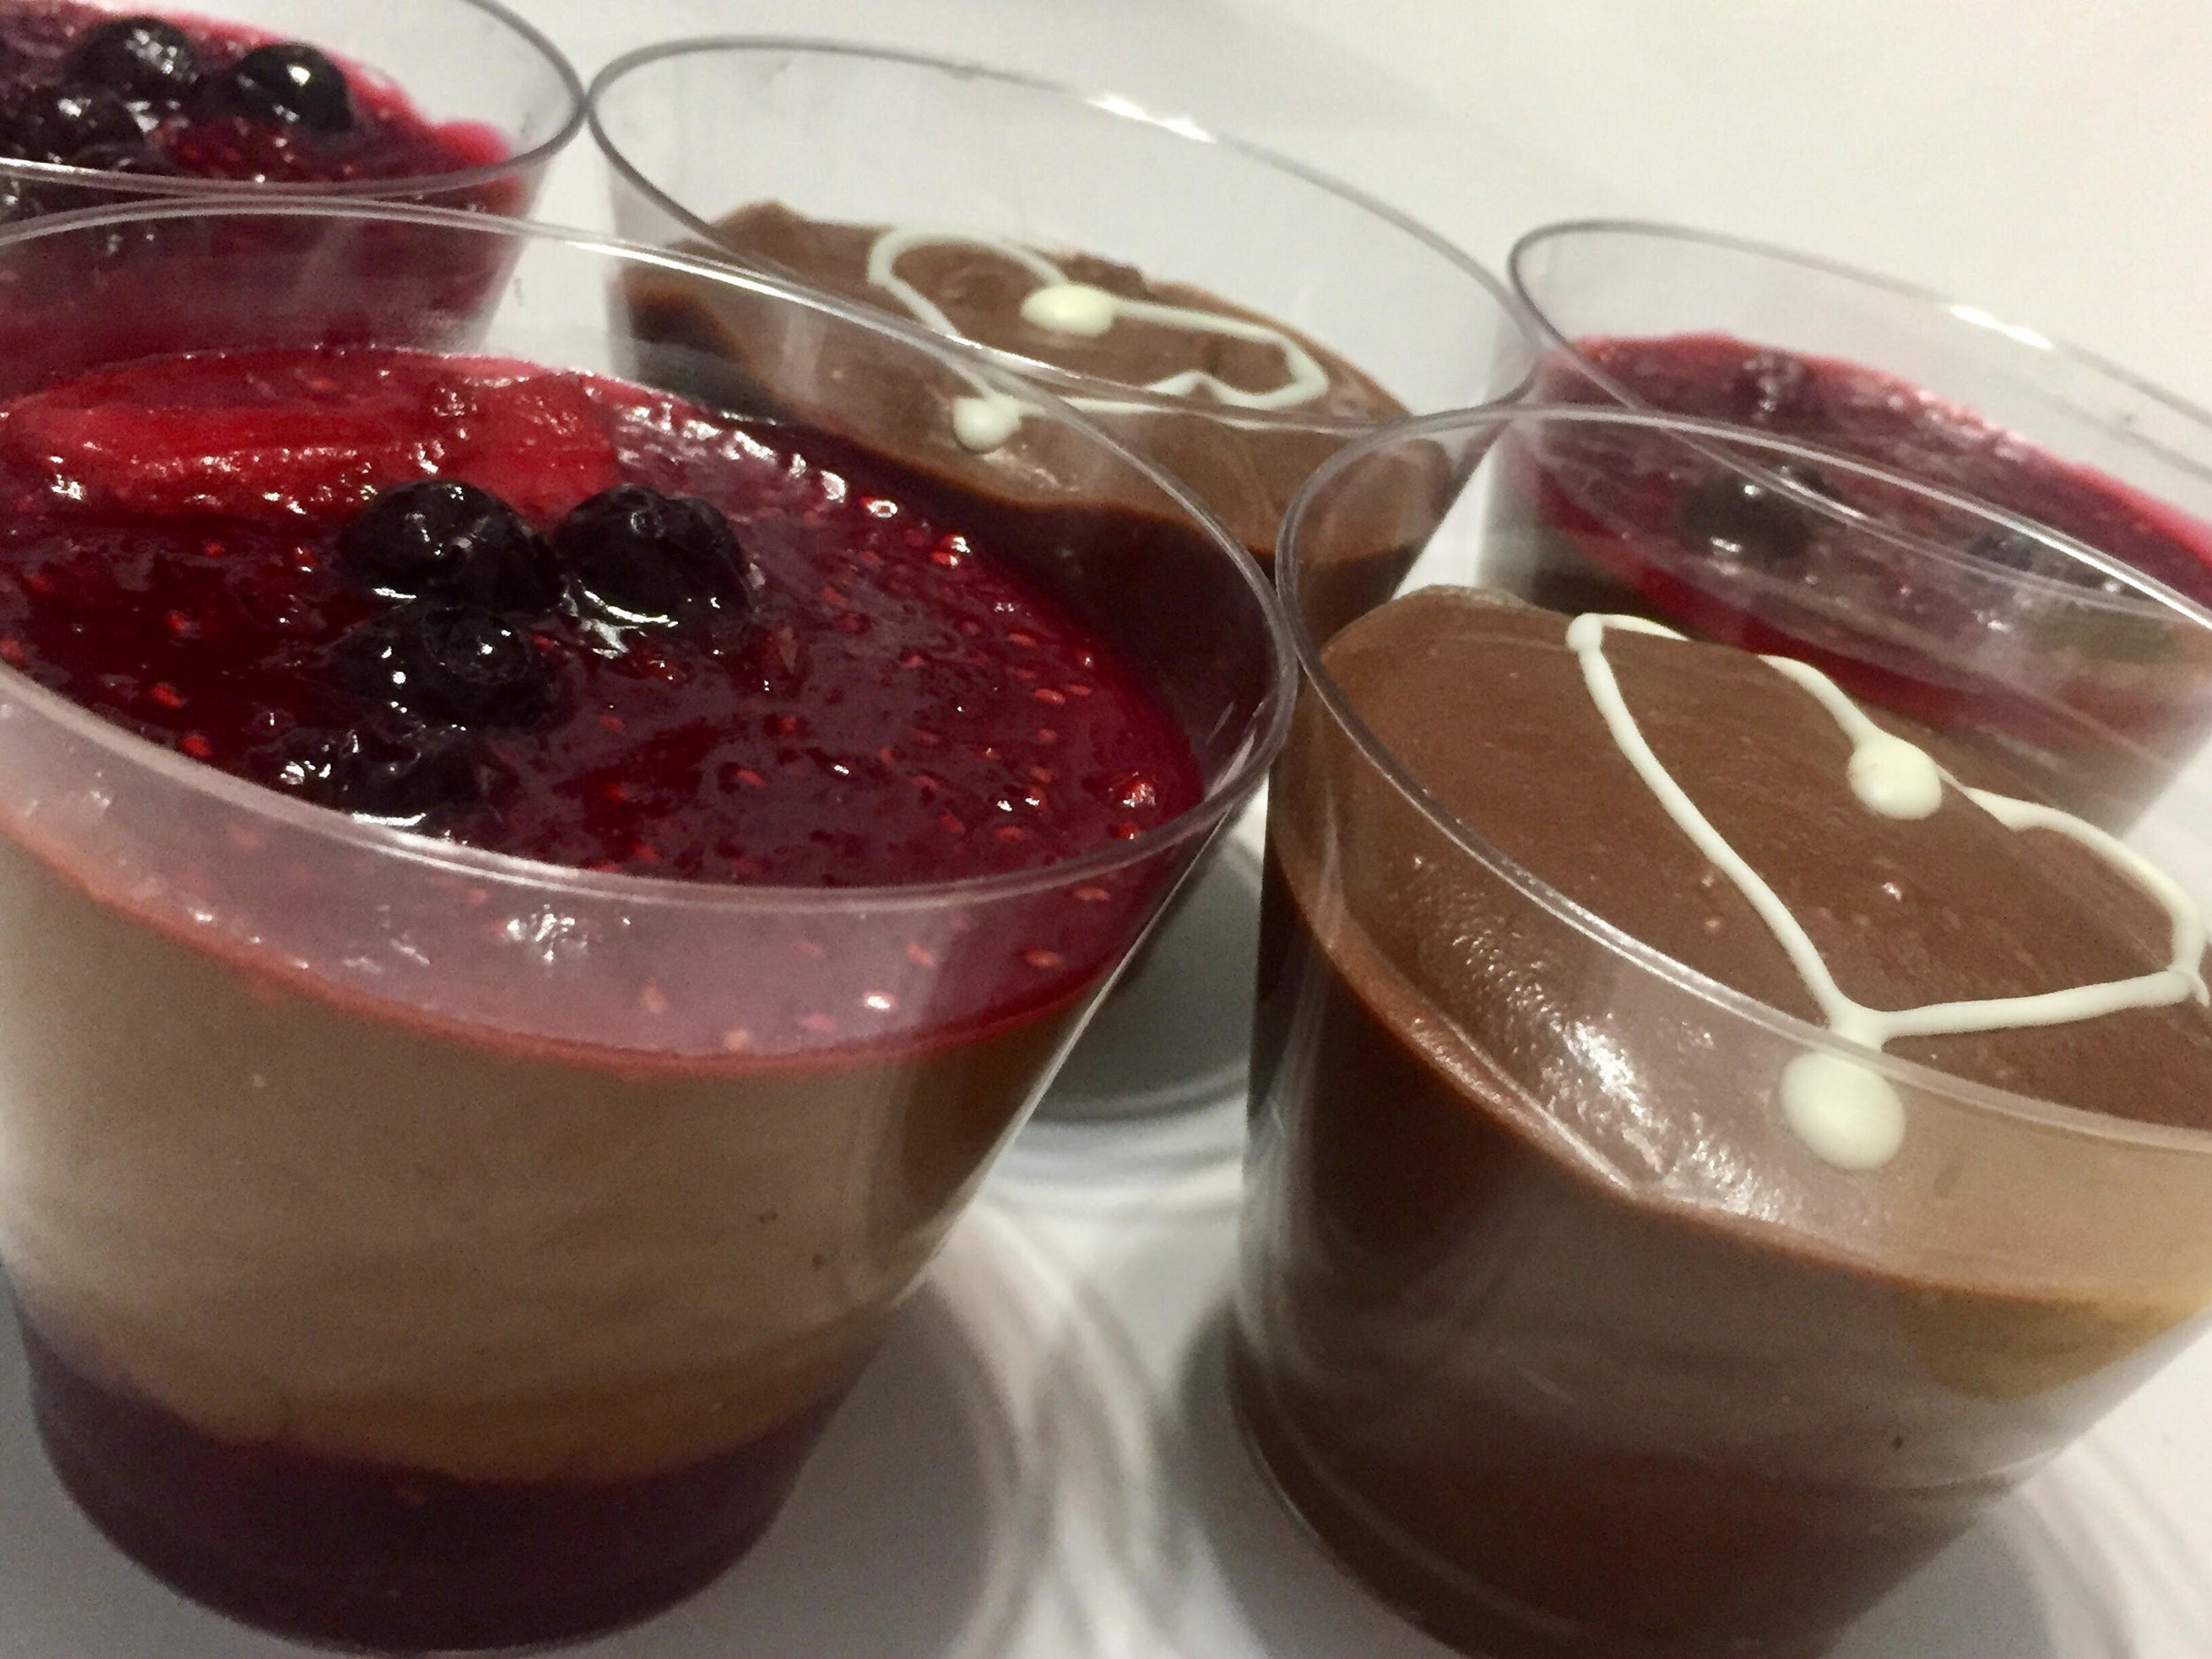 Nutella Mousse, and Chocolate Mousse with a Berry Sauce